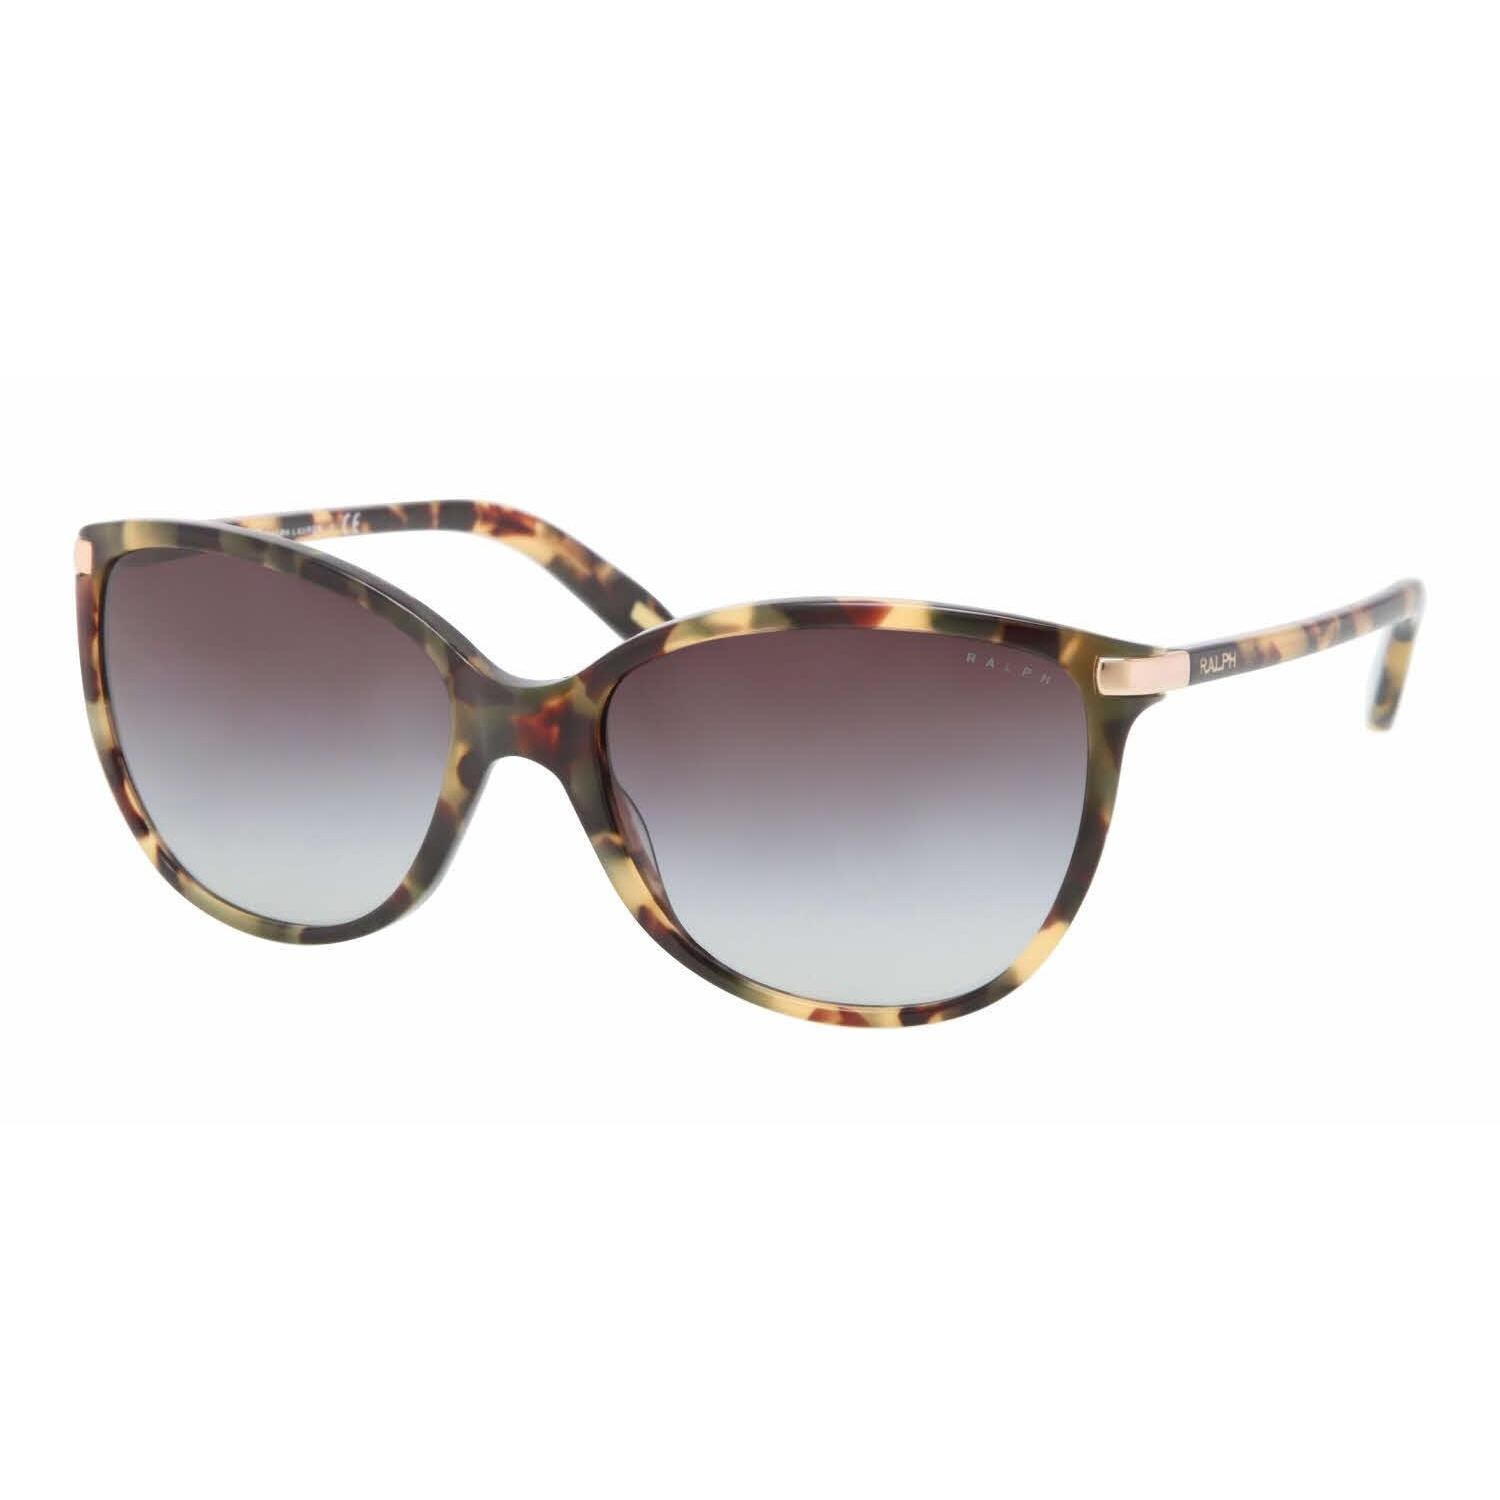 17f2edf87ea0e Shop Ralph Women RA5160 905 13 Havana Plastic Cat Eye Sunglasses - Free  Shipping Today - Overstock - 13322570